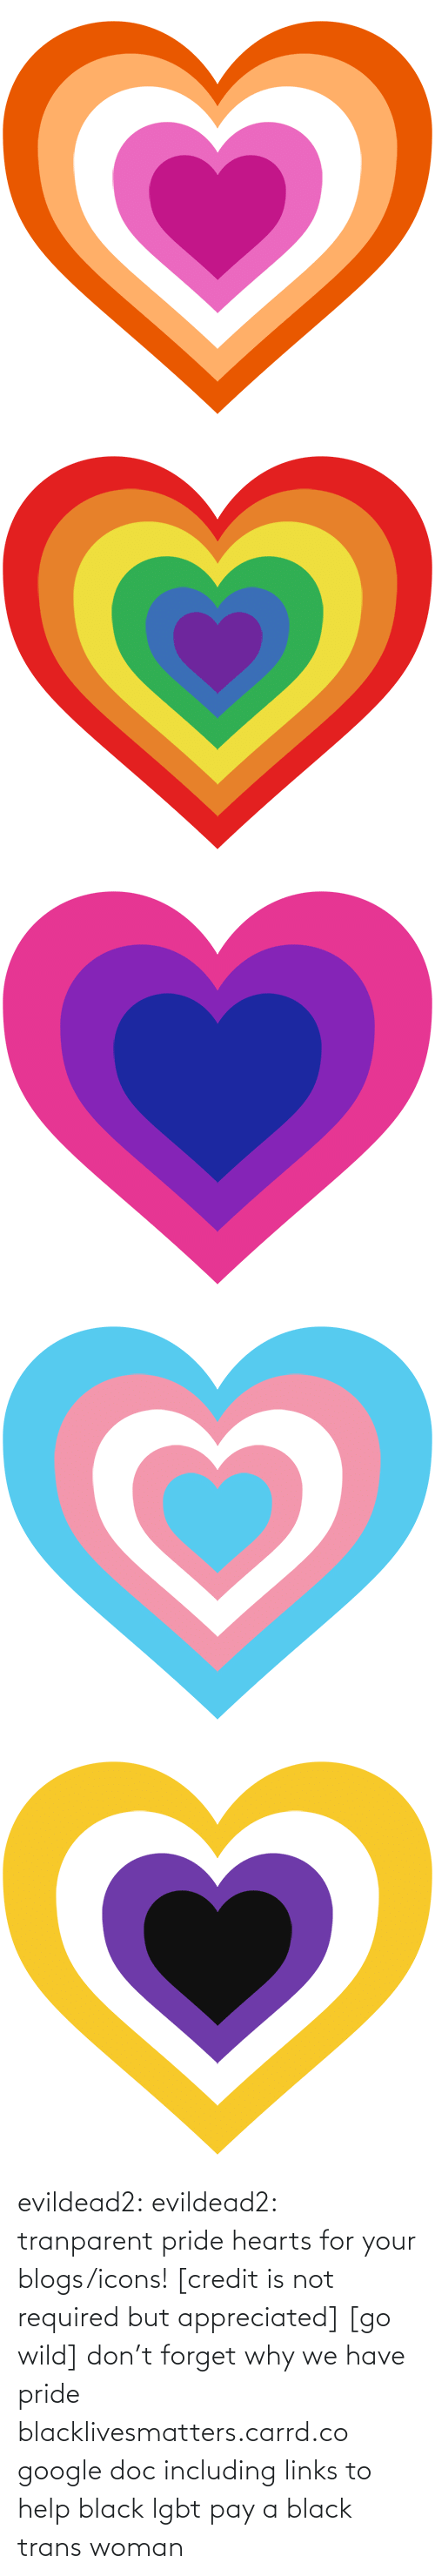 Help: evildead2:  evildead2:  tranparent pride hearts for your blogs/icons! [credit is not required but appreciated] [go wild]      don't forget why we have pride  blacklivesmatters.carrd.co  google doc including links to help black lgbt pay a black trans woman